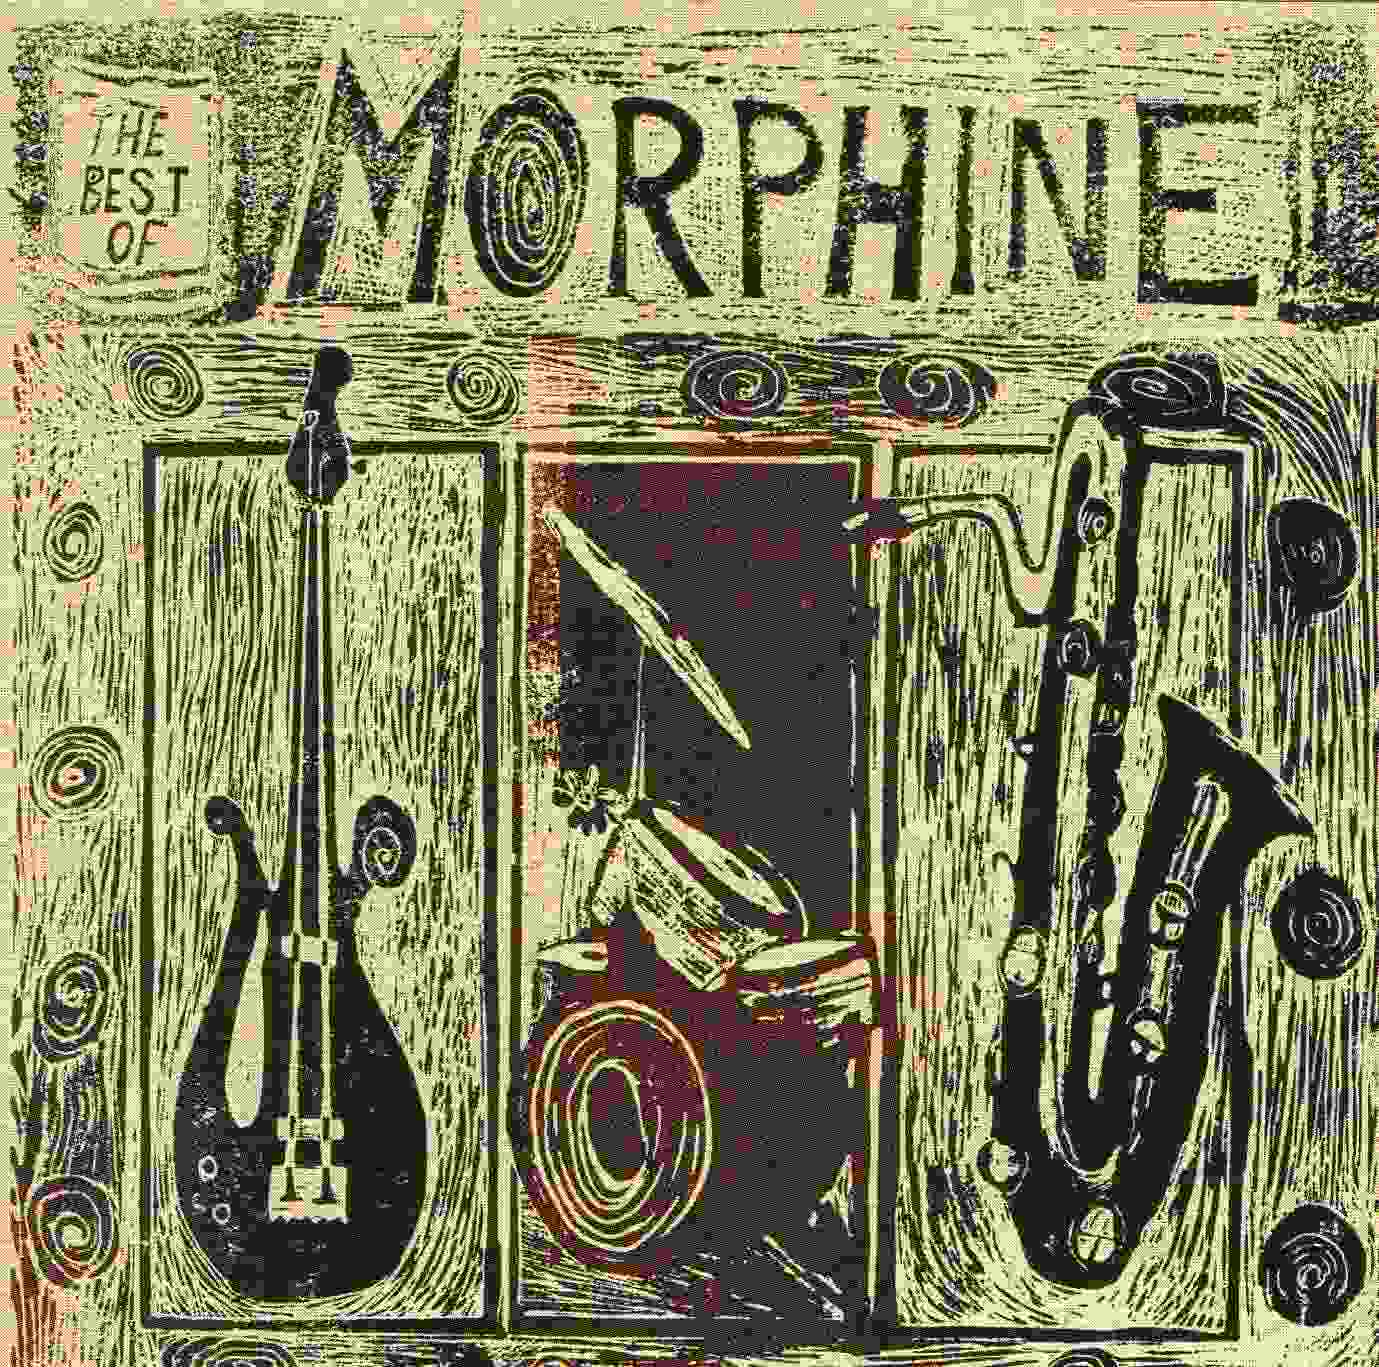 「The Best of MORPHINE 1992-1995」MORPHINE_d0335541_20485240.jpg